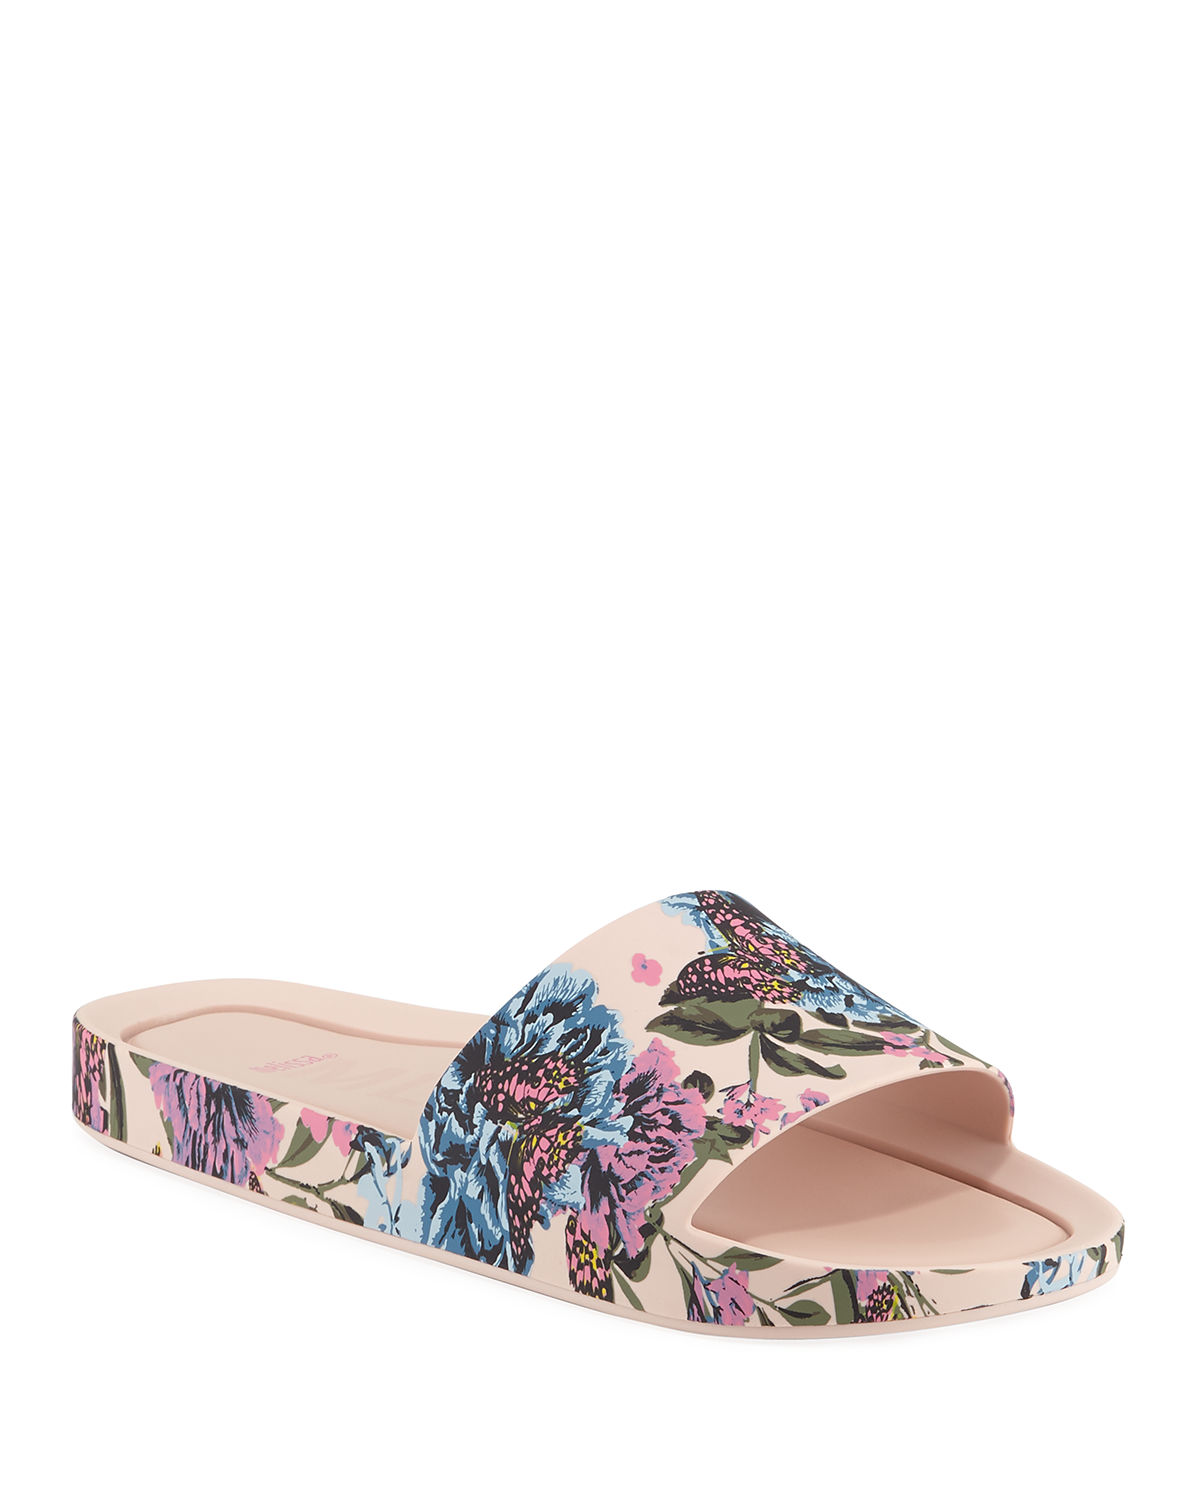 80f114c7e Melissa Beach Floral Pvc Slide Sandals In Pink Blue